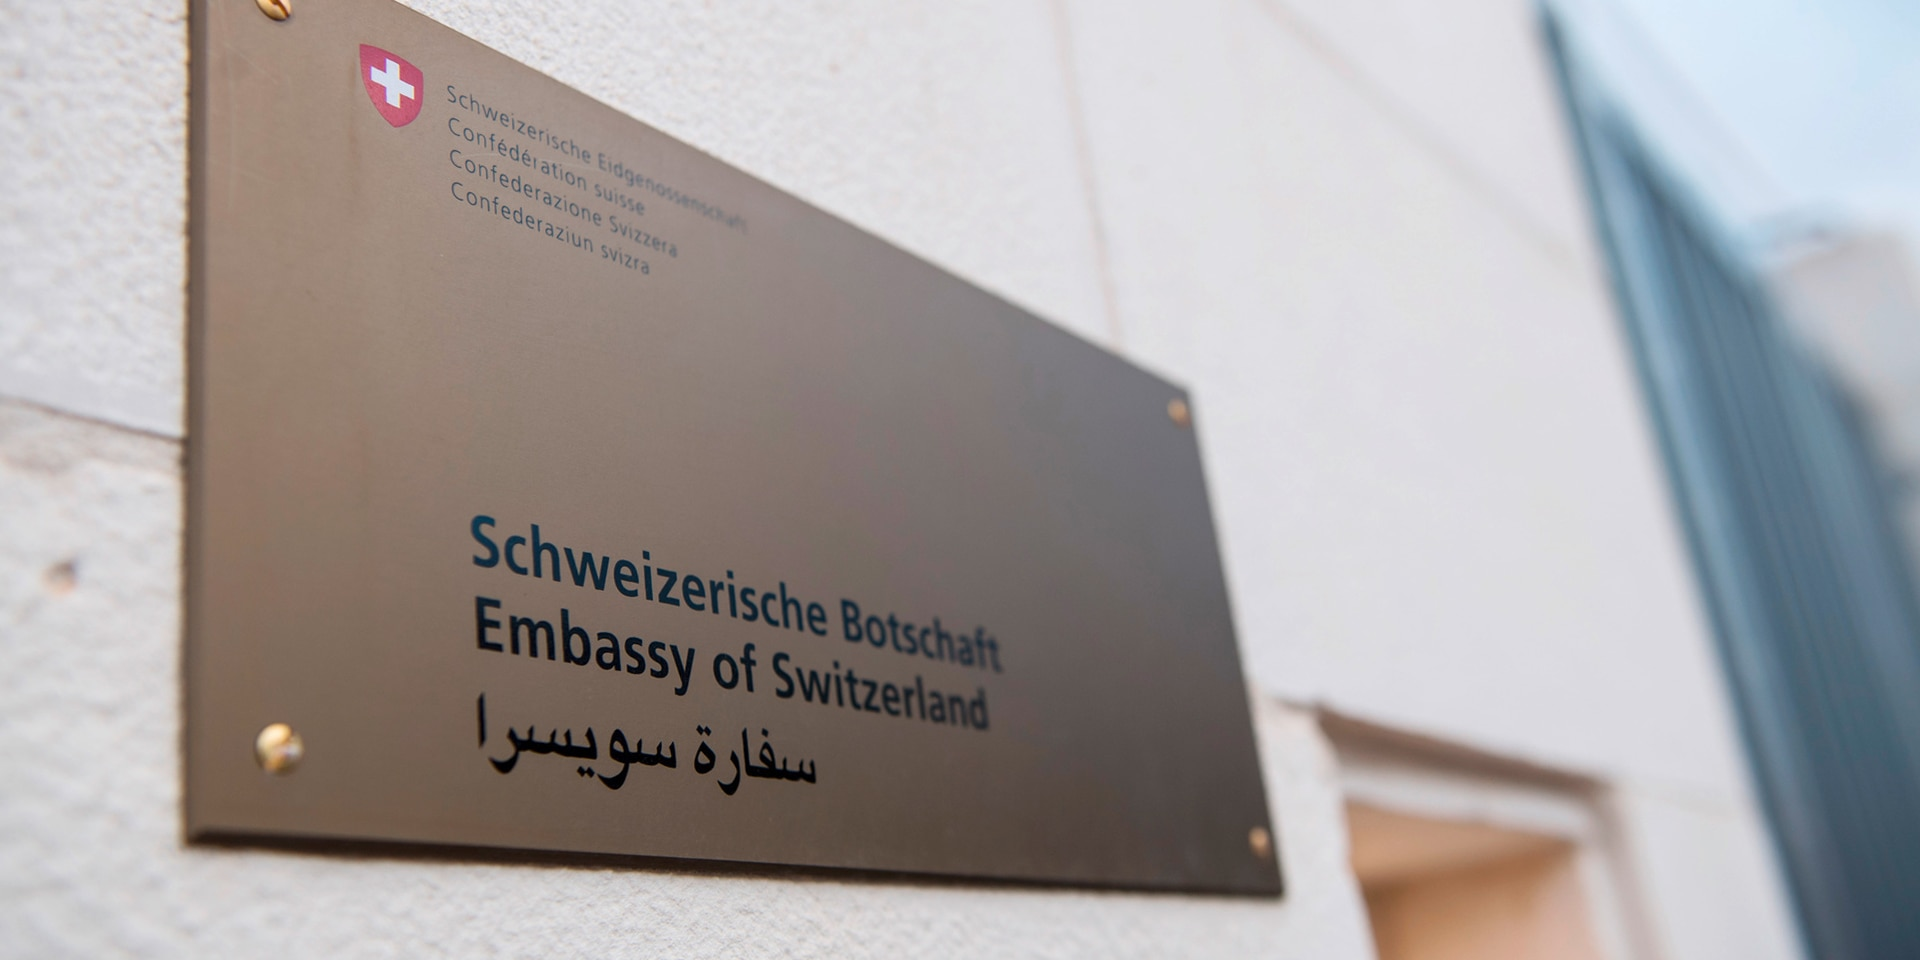 'Embassy of Switzerland' sign in German, English and Arabic.